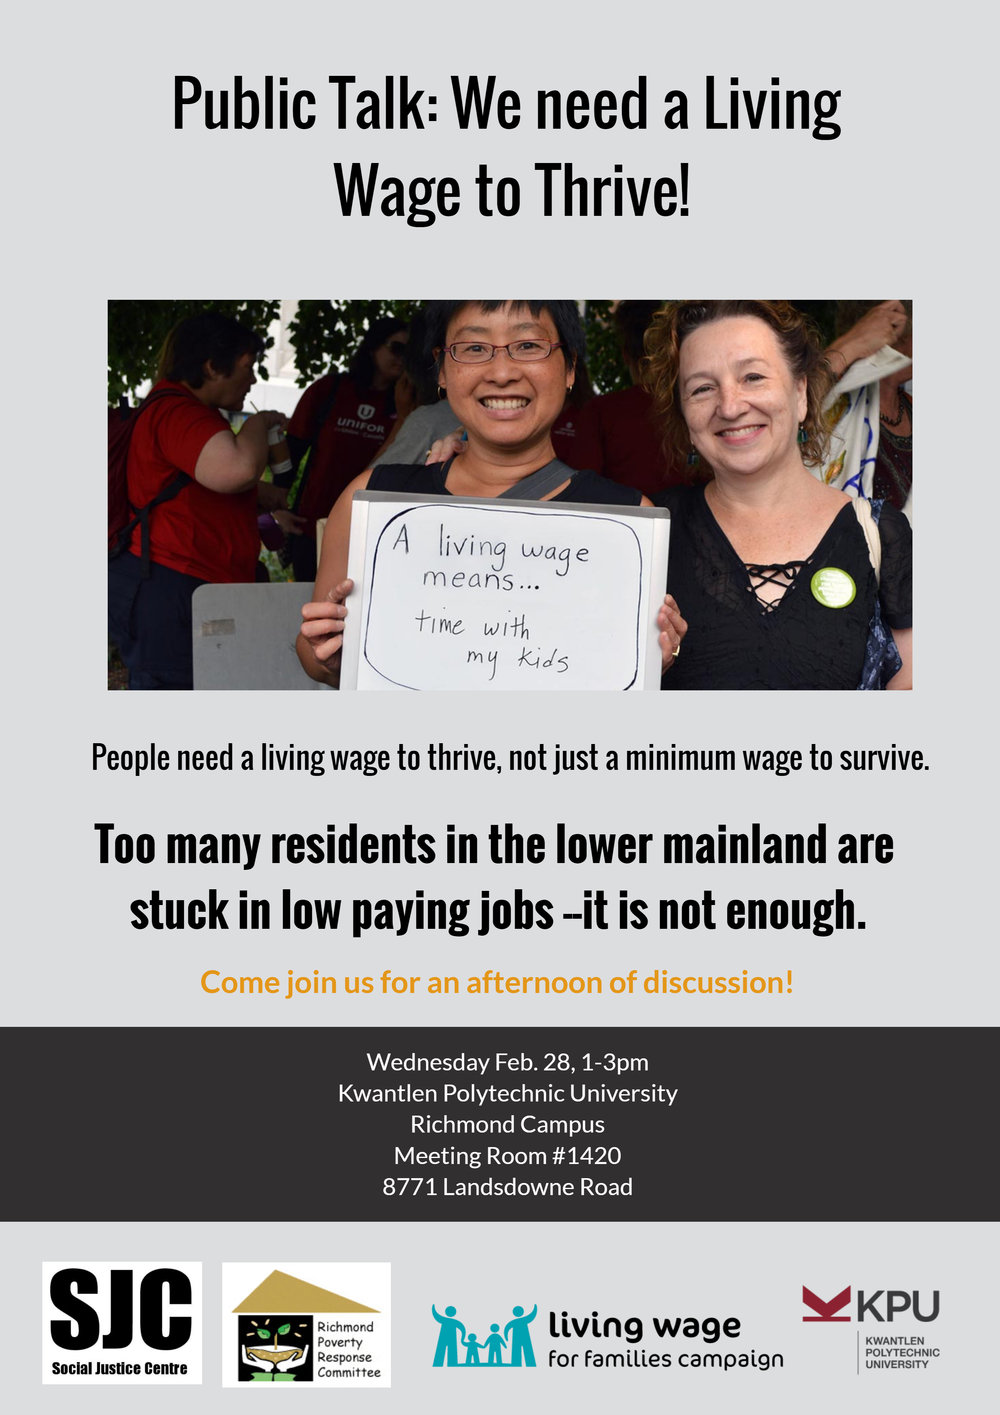 We Need a Living Wage Poster - alternate - Feb 28 2018.jpg